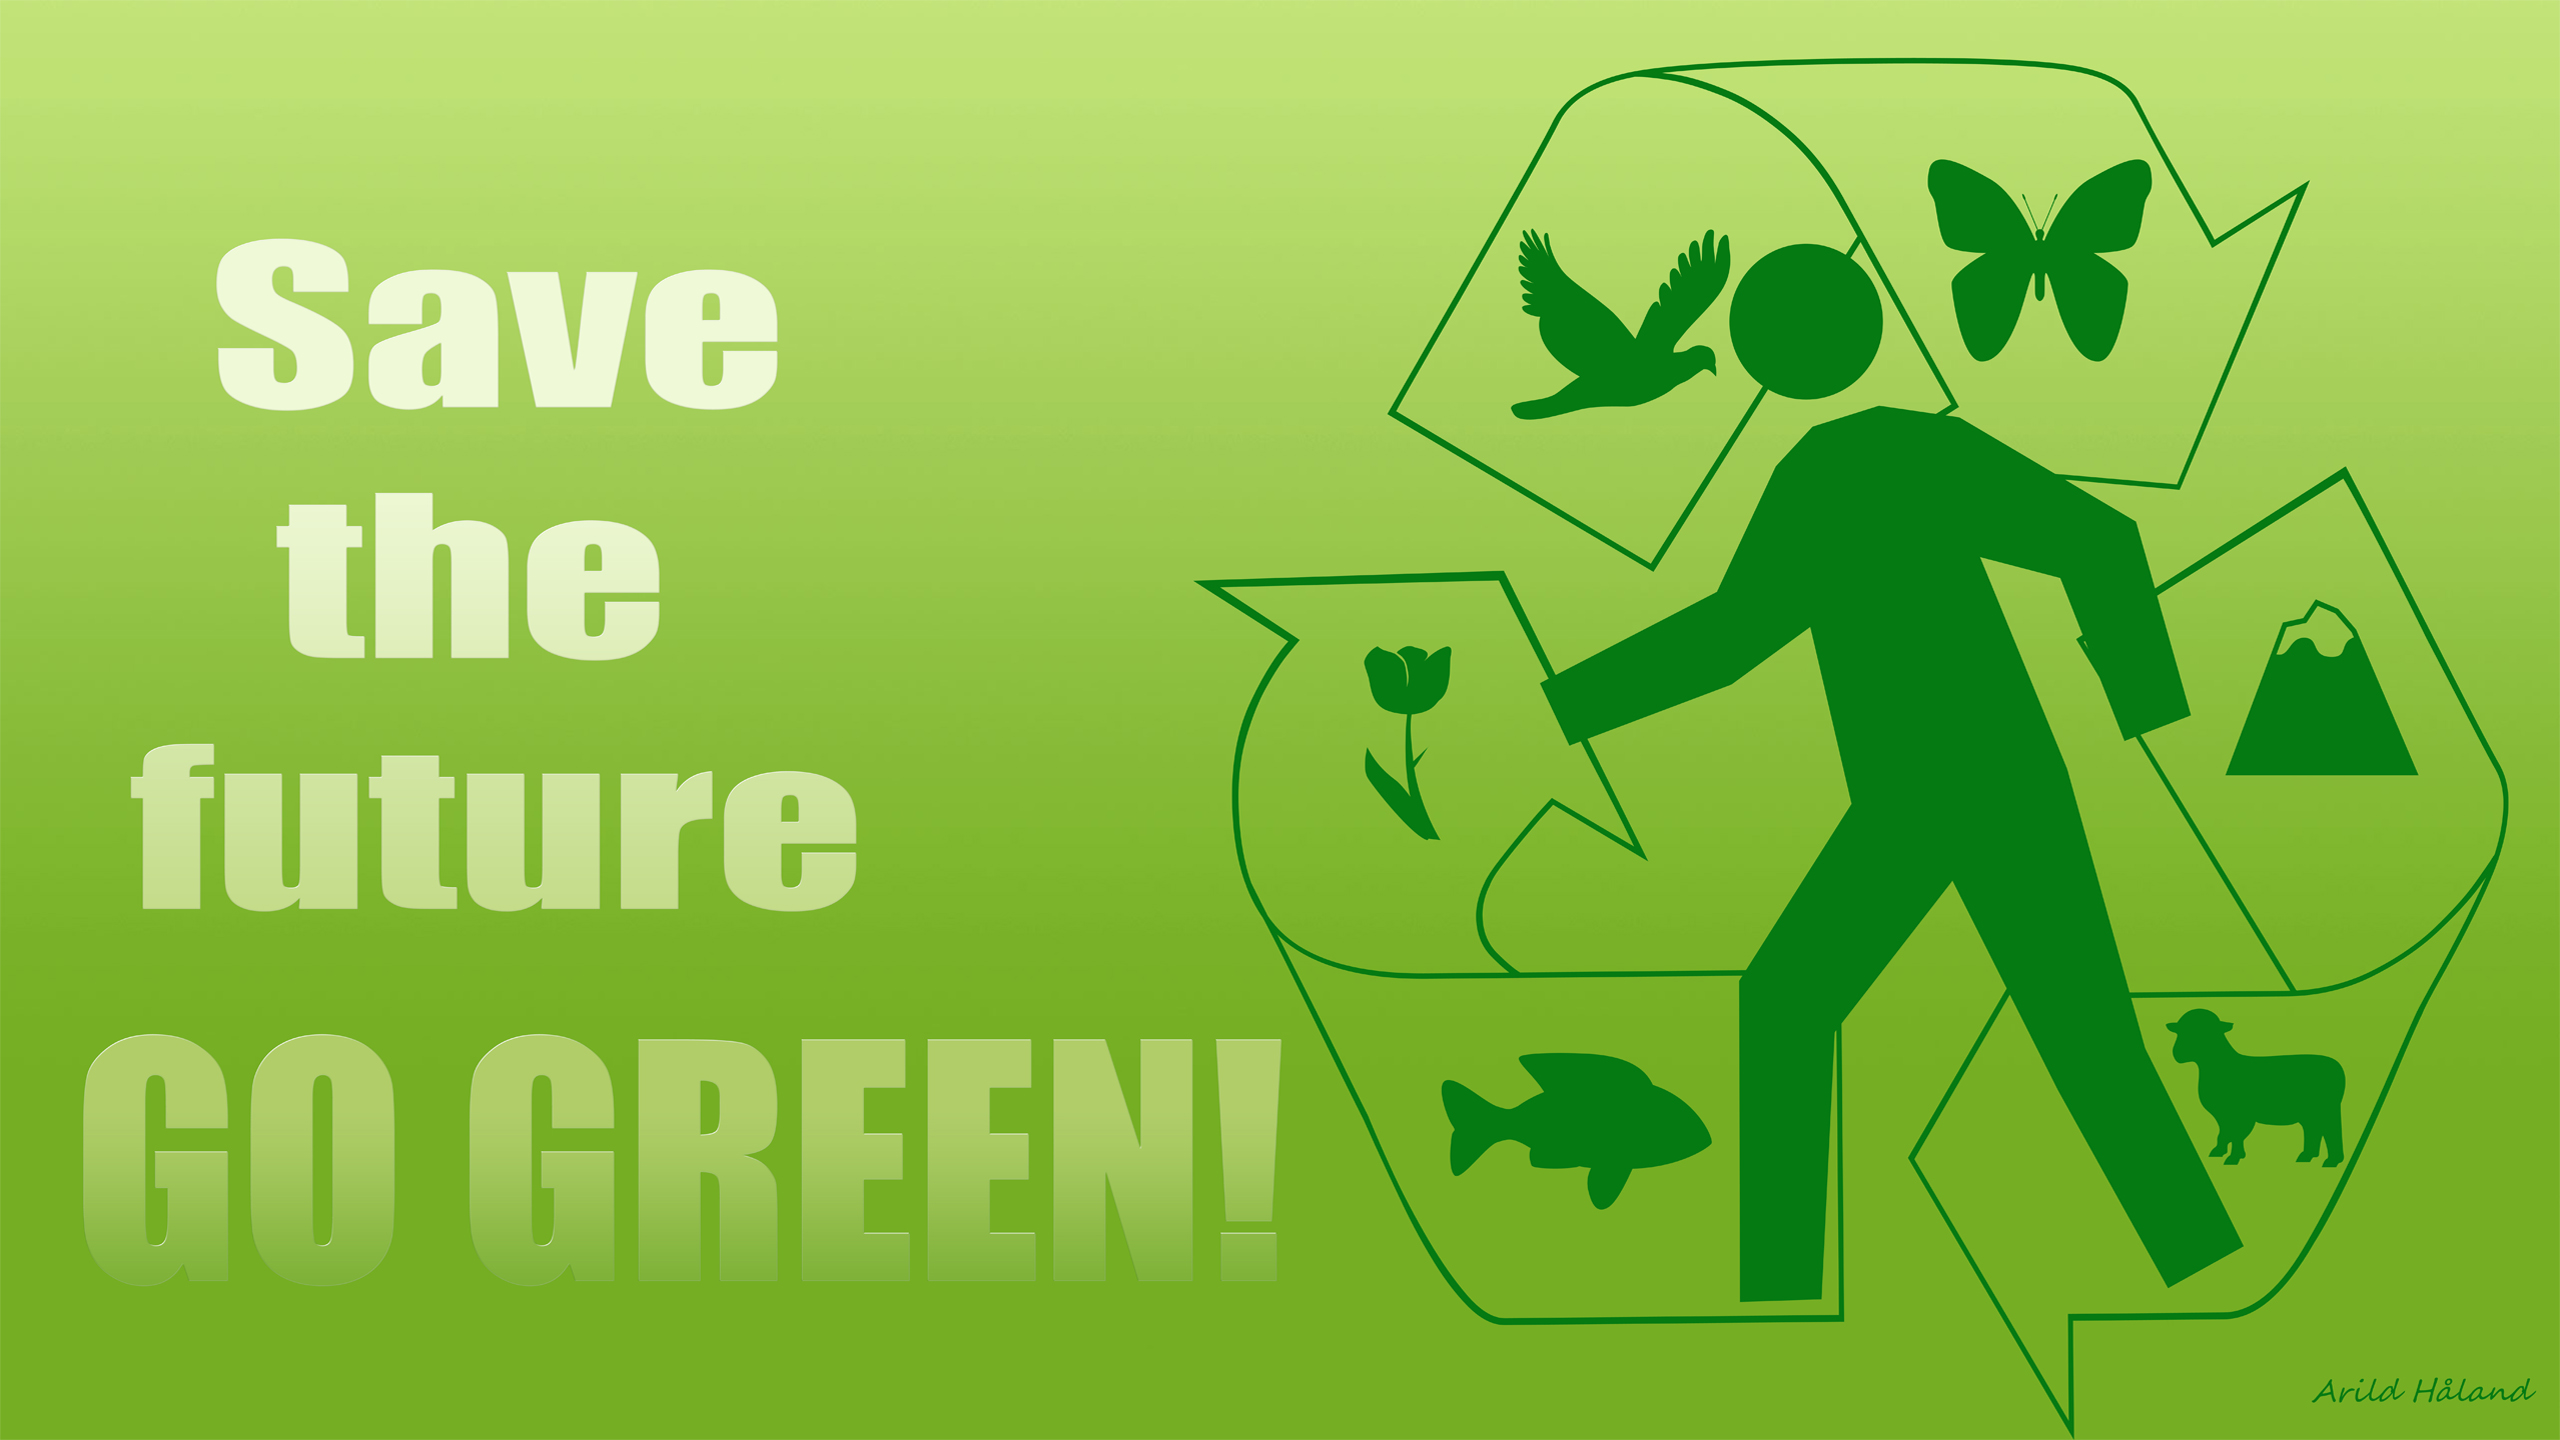 2560x1440 Save the future - GO GREEN! desktop PC and Mac wallpaper: wallpaperstock.net/save-the-future---go-green!_wallpapers_29555...